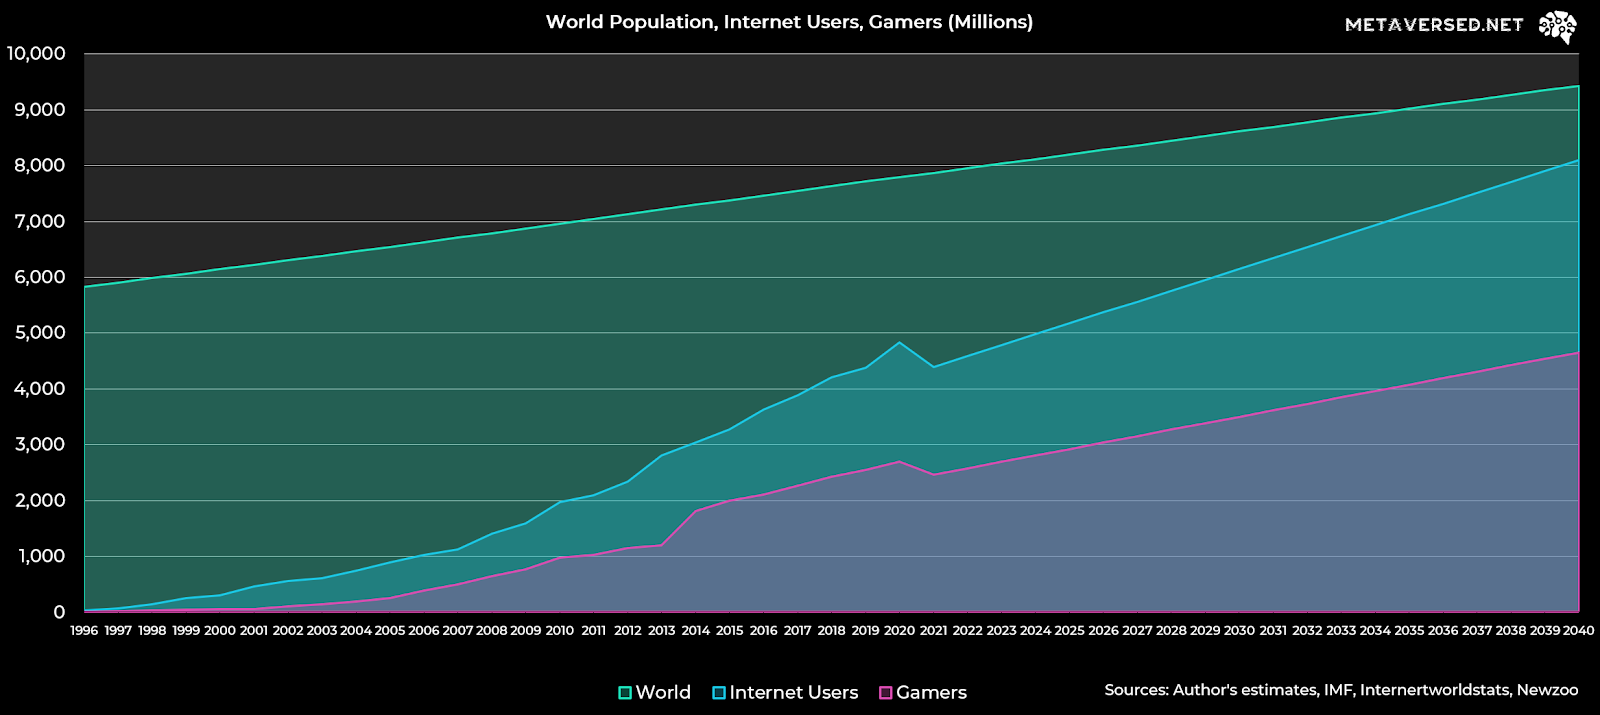 Expected growth of gamers vs world population